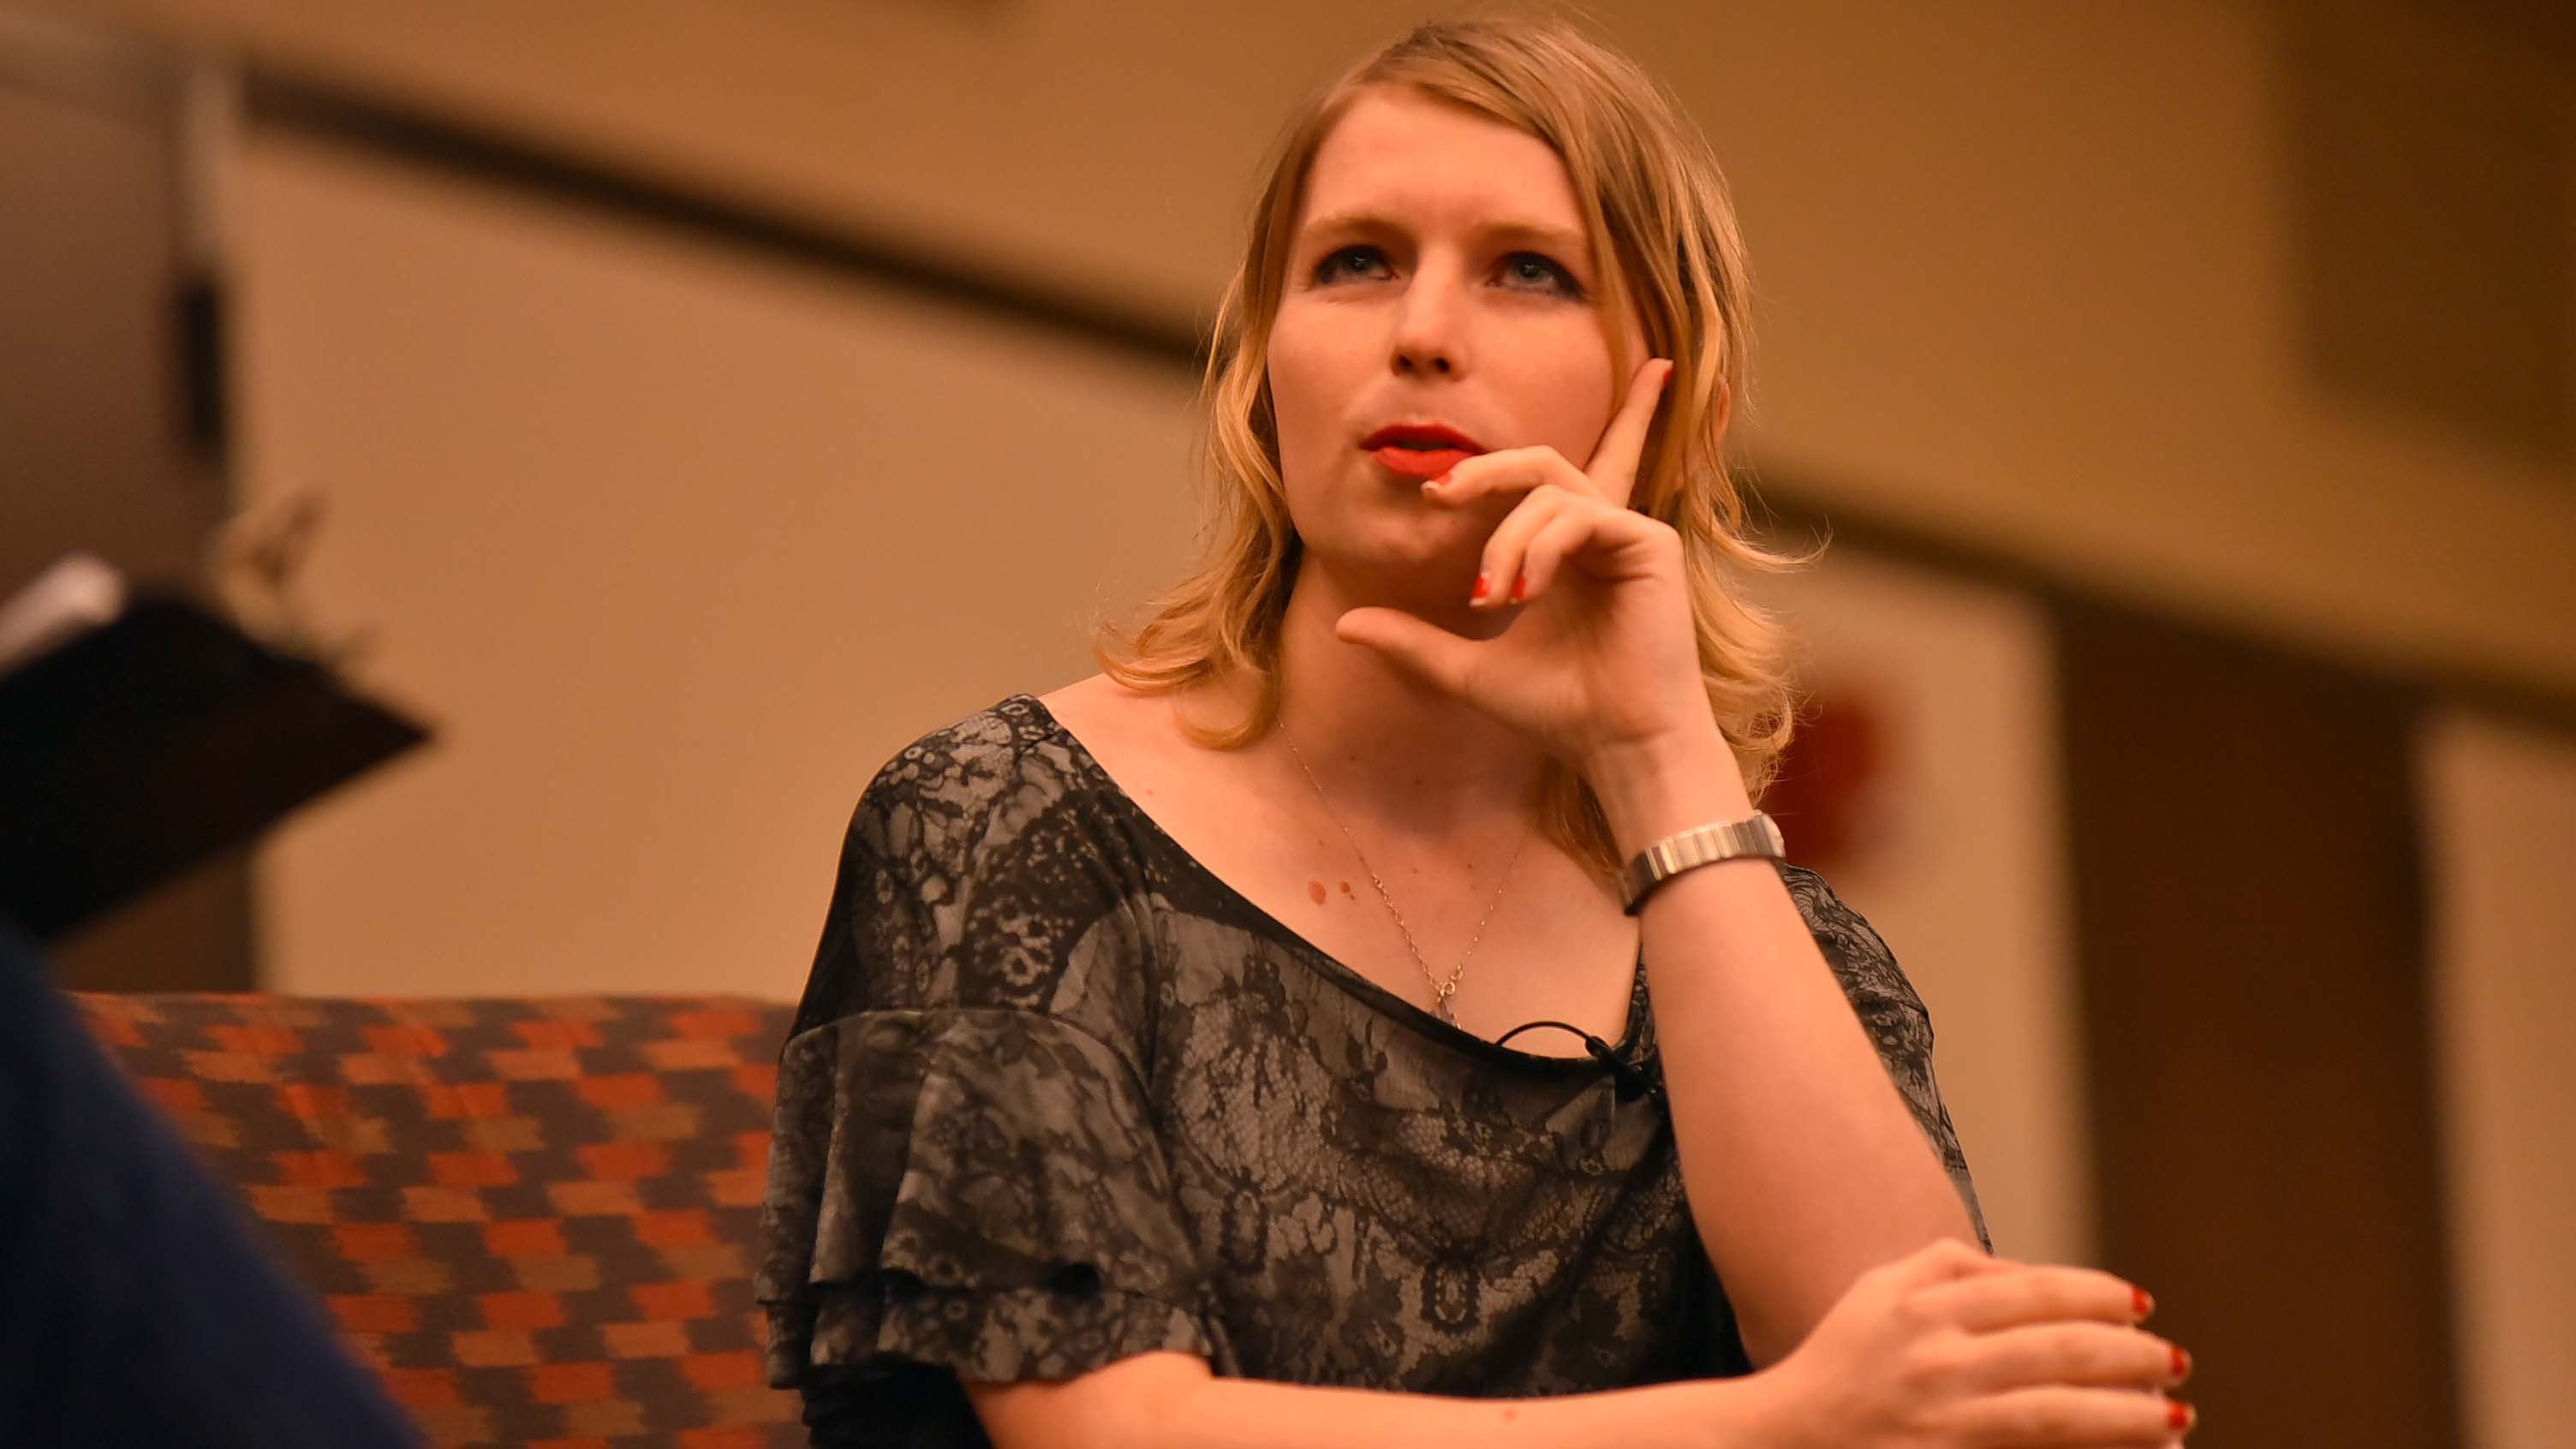 Chelsea Manning pauses and thinks about a question that was asked.